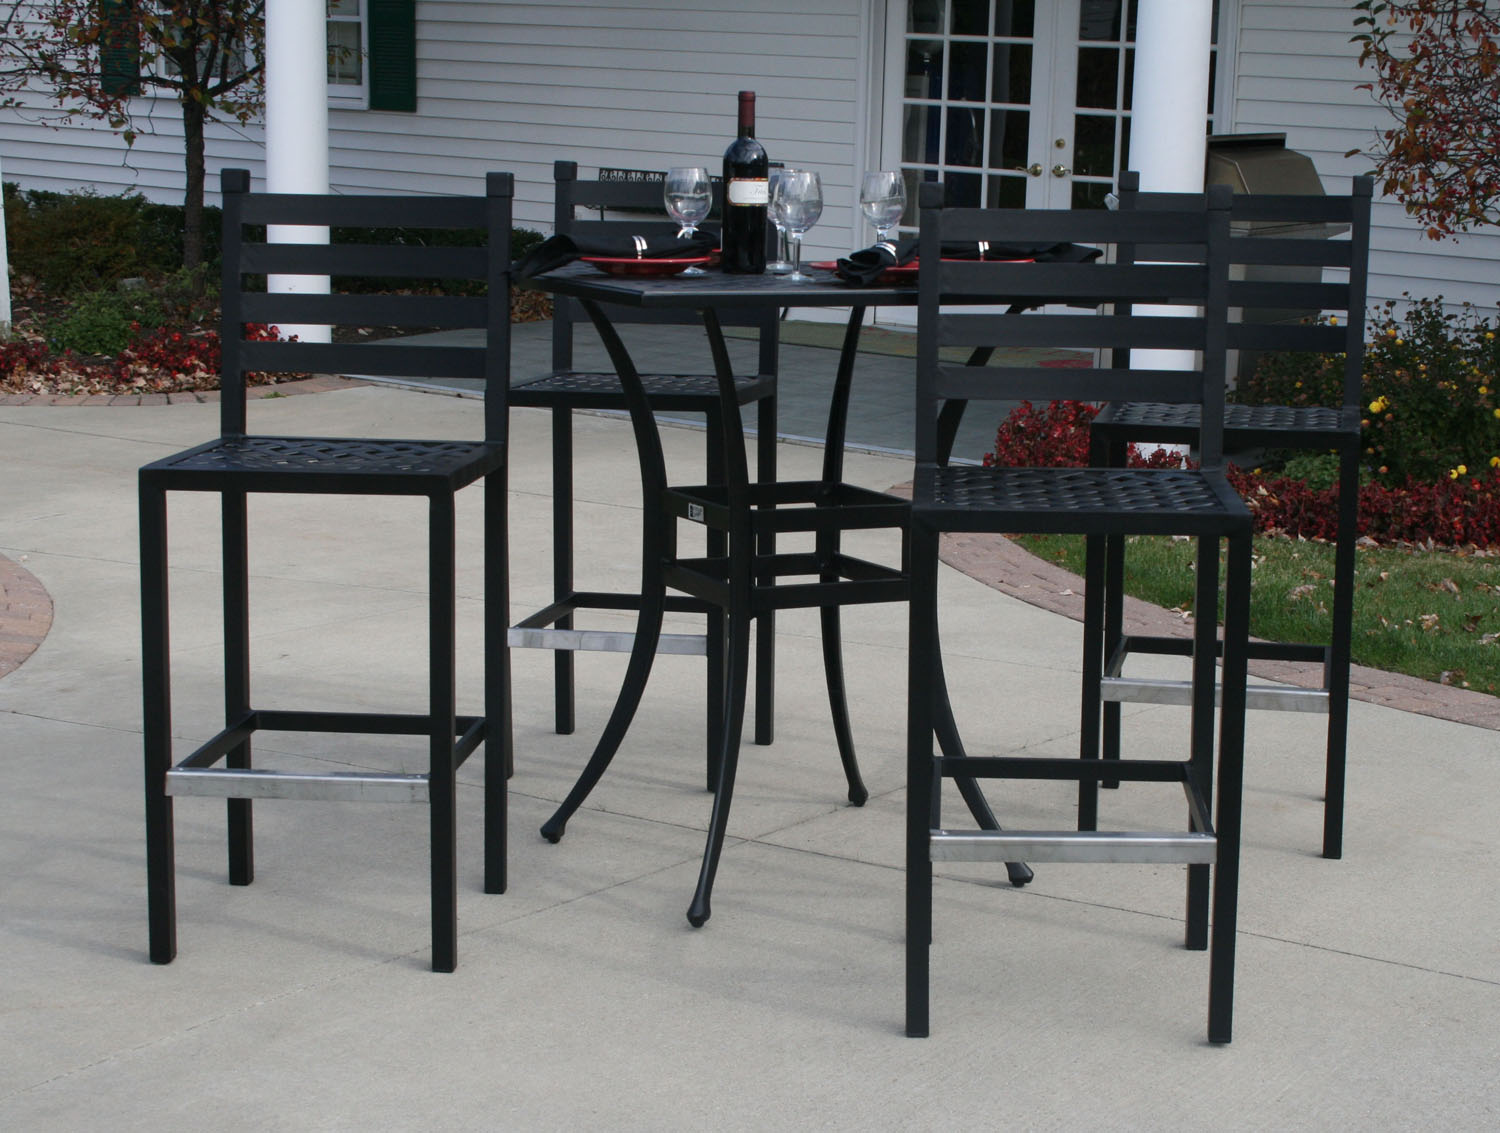 ansley luxury 4 person all welded cast aluminum patio furniture bar